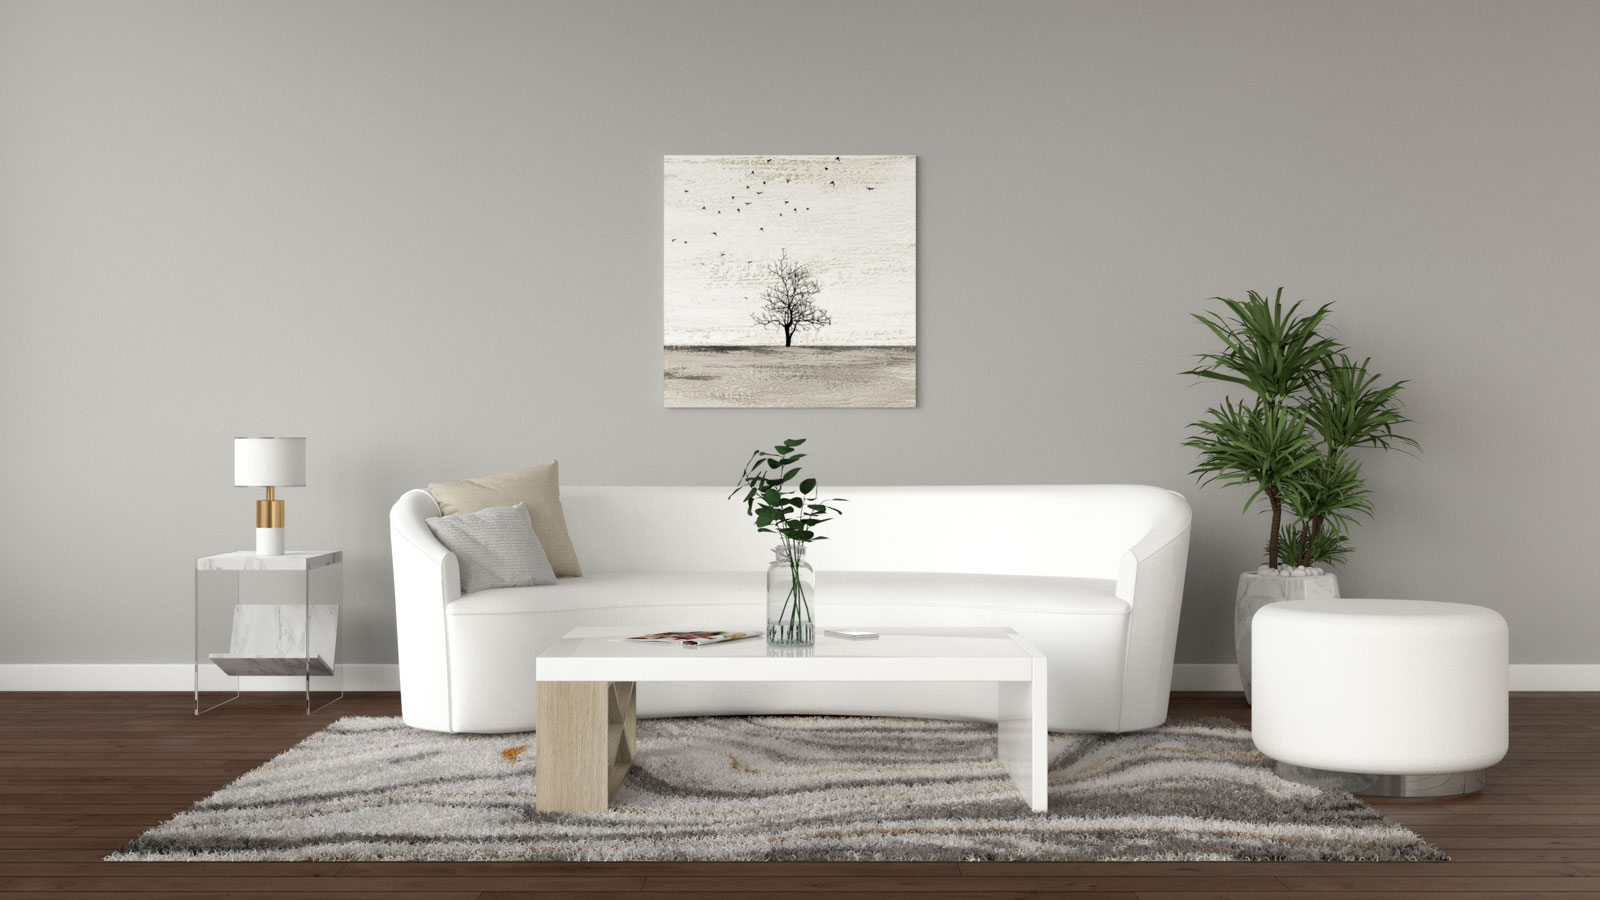 Light gray walls with white furnishings